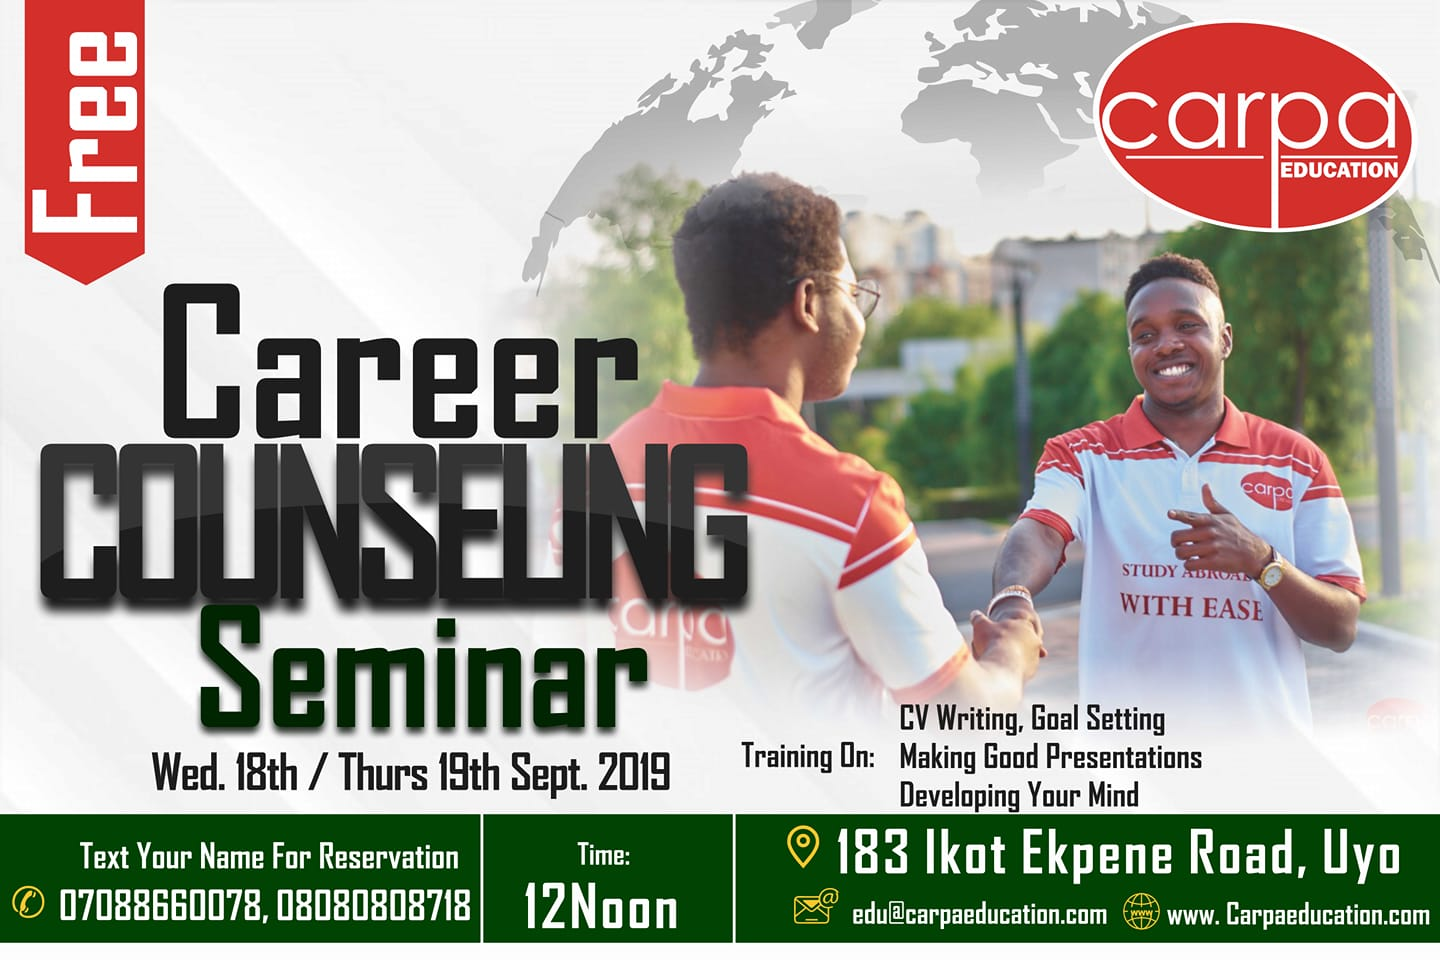 Free Career Counseling Seminar for Students and Graduates